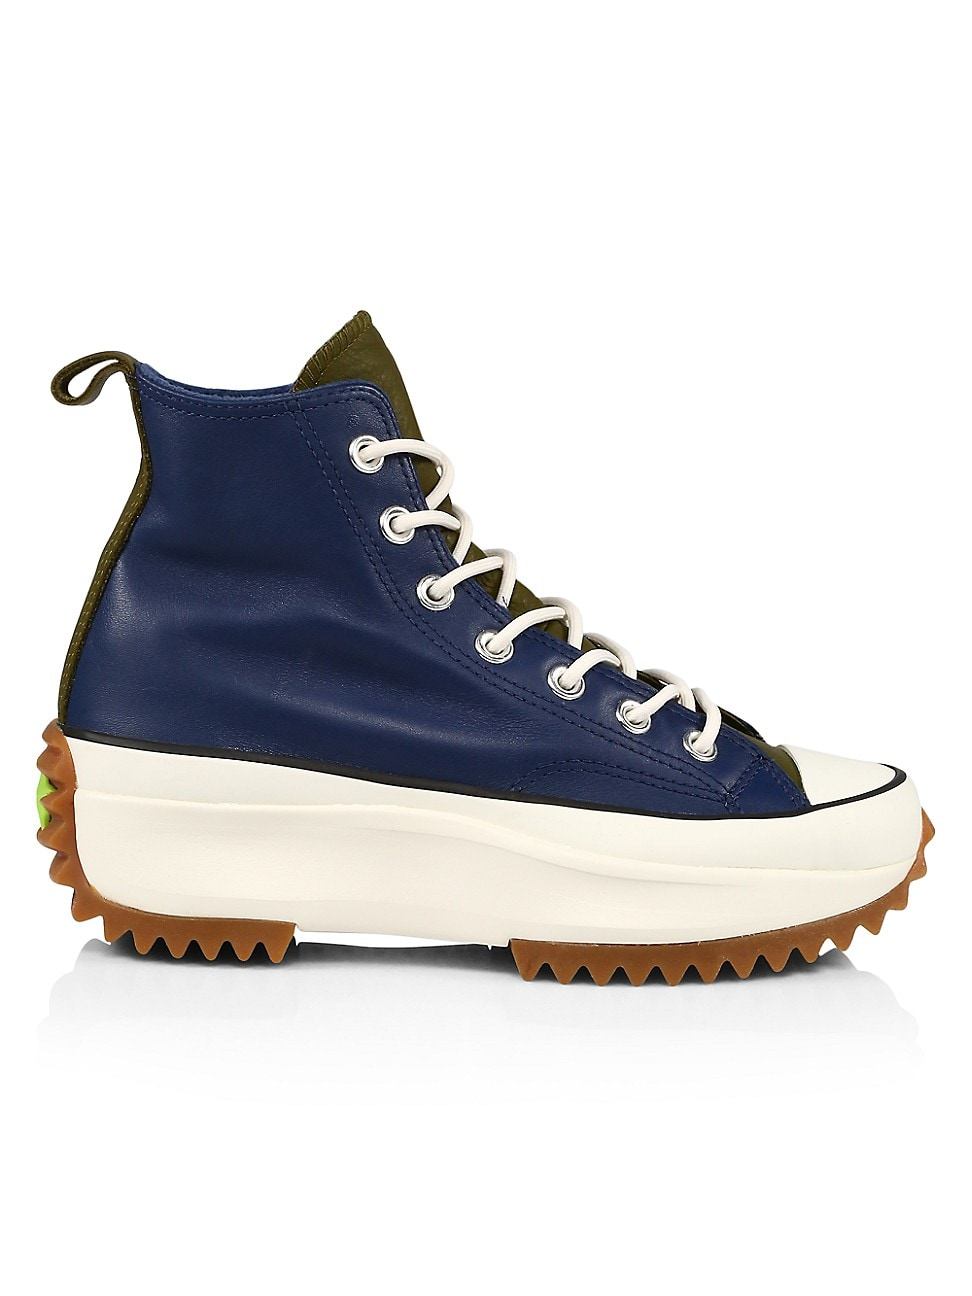 Converse WOMEN'S RUN STAR HIKE HIGH-TOP LEATHER SNEAKERS